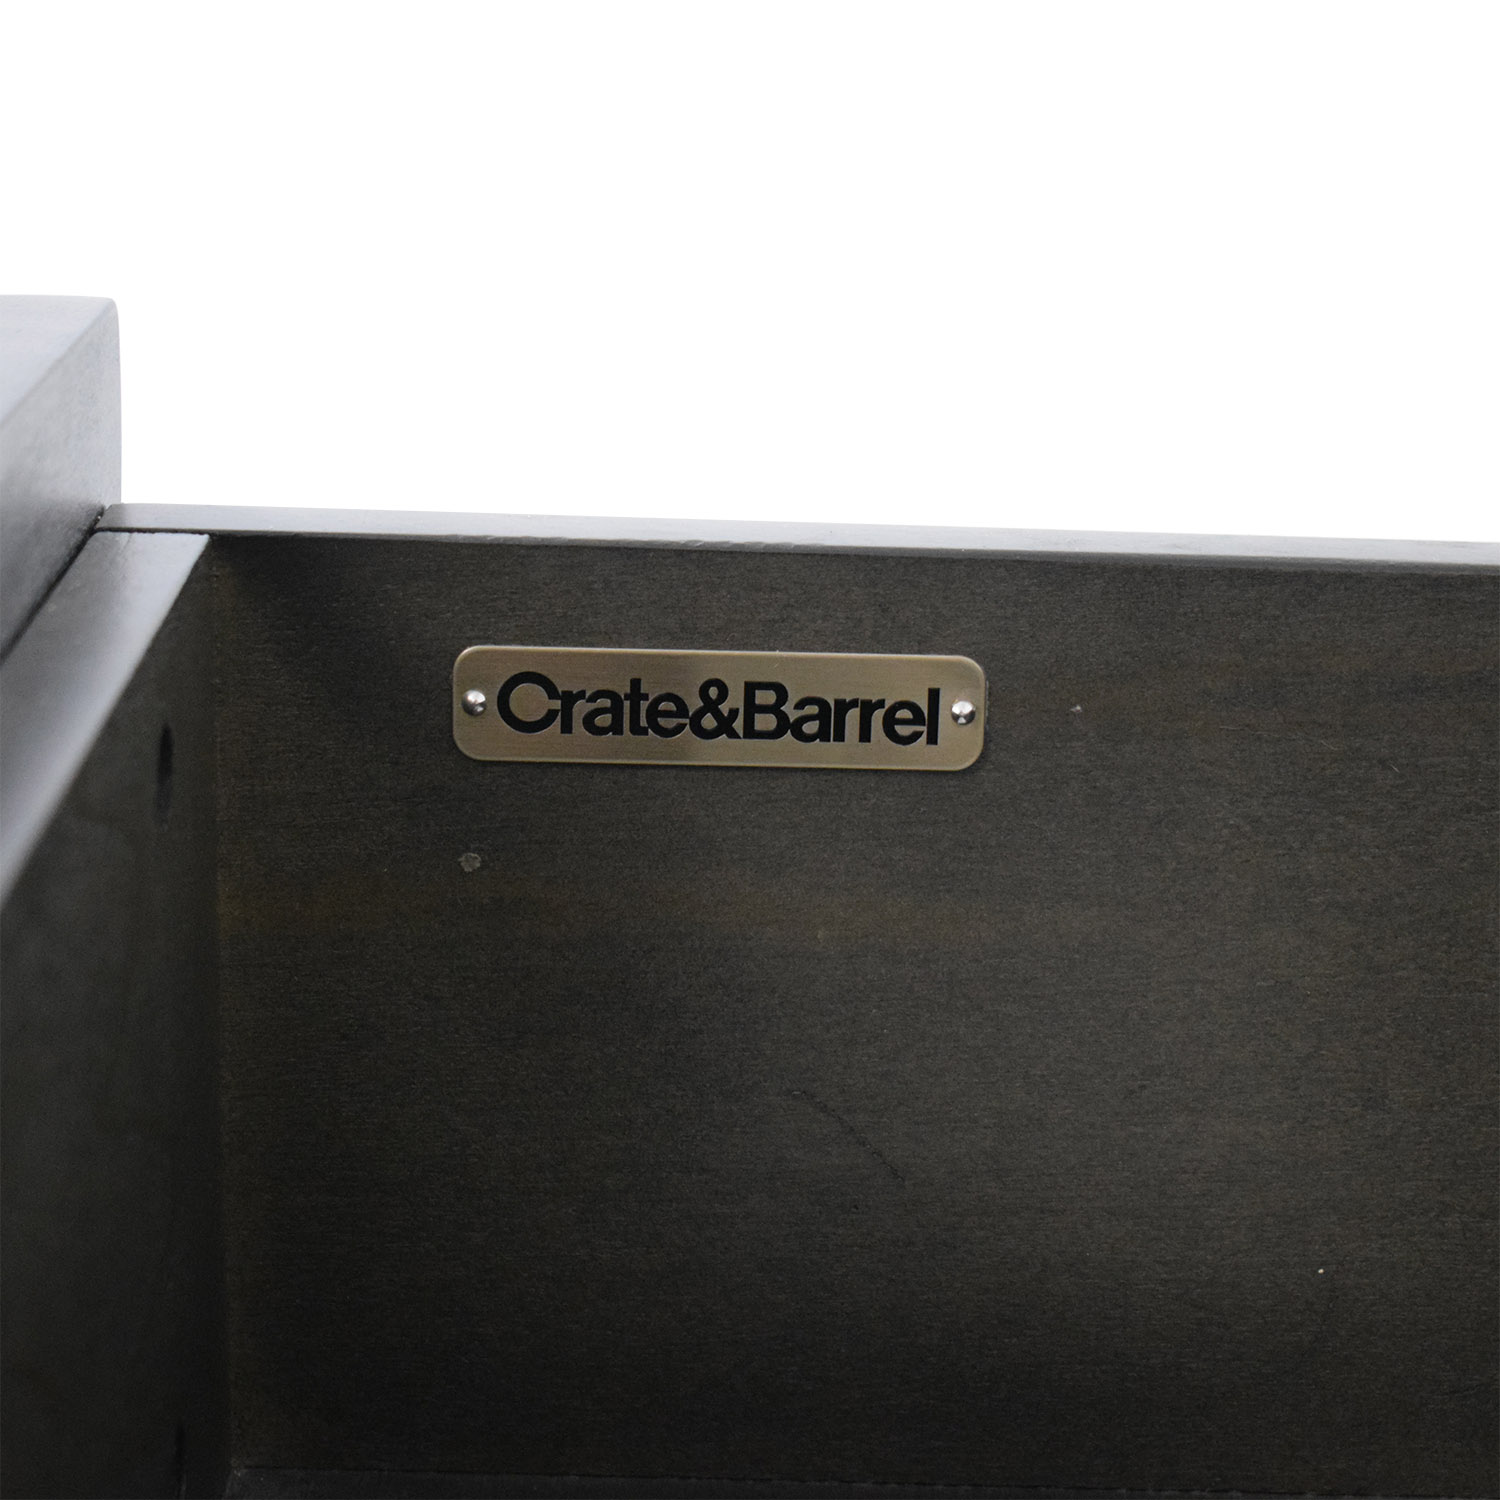 buy Crate & Barrel Mason Shadow Dresser Crate & Barrel Dressers